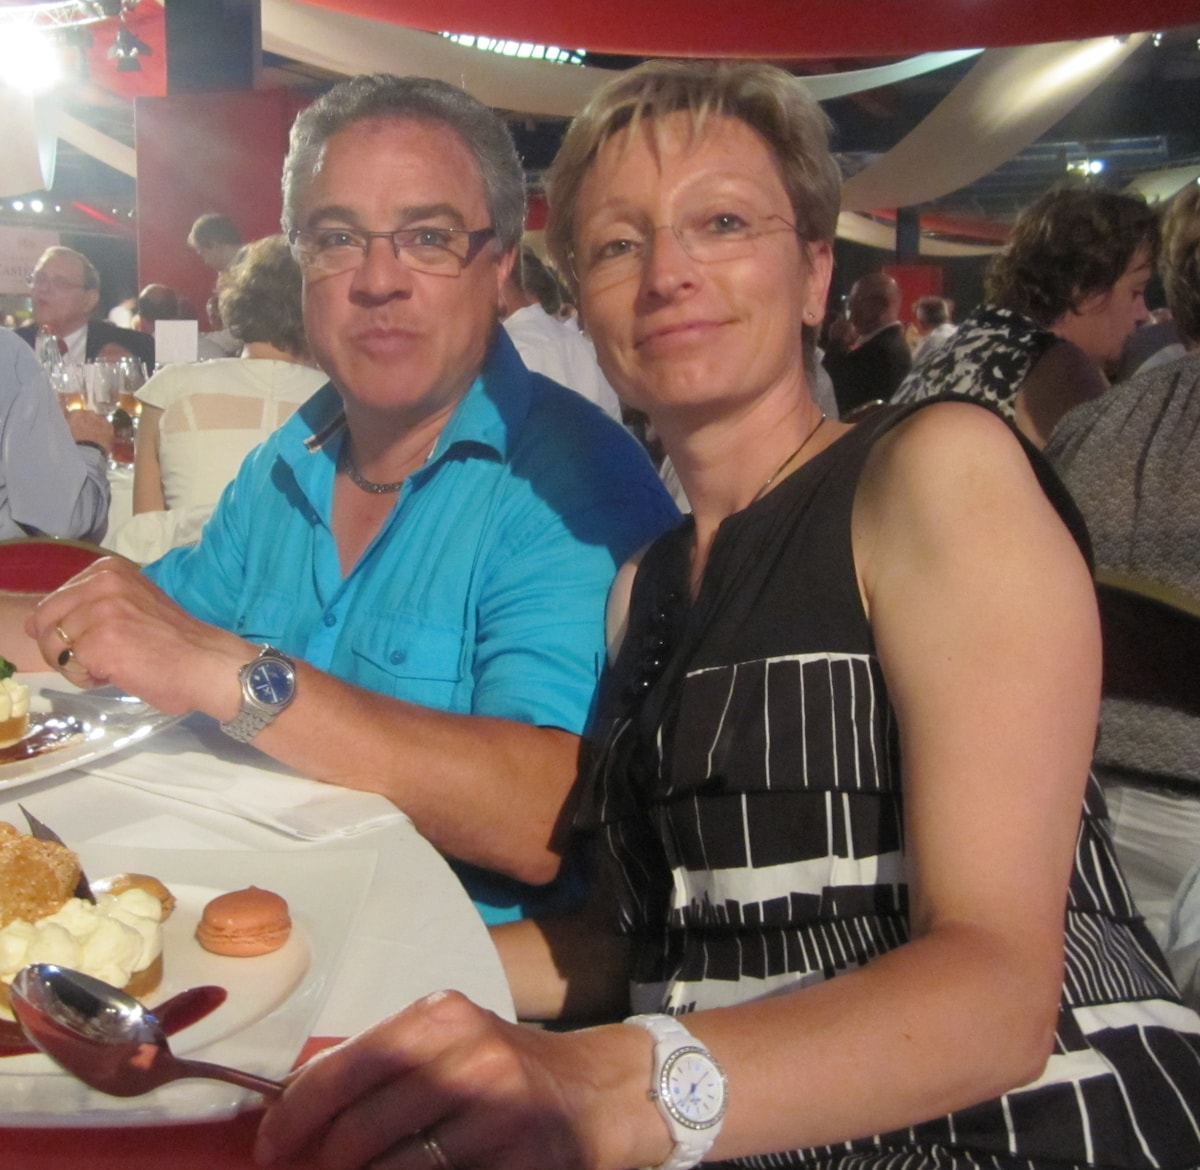 Corinne from Vert-Toulon